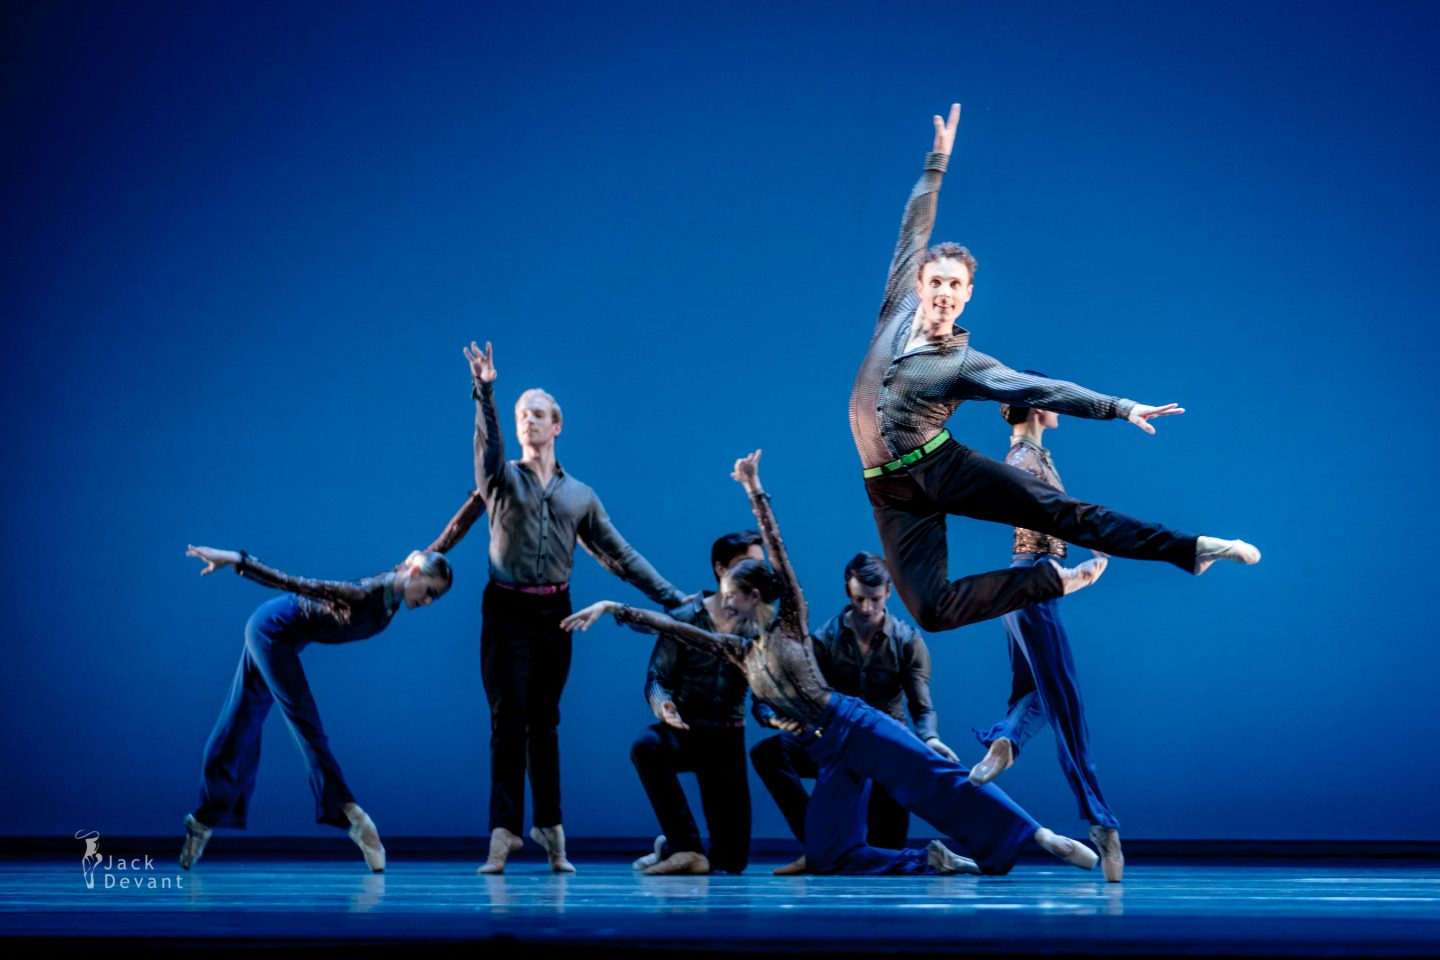 Soloists of HET Nationale Ballet and Remi Wörtmeyer in Concerto Concordia